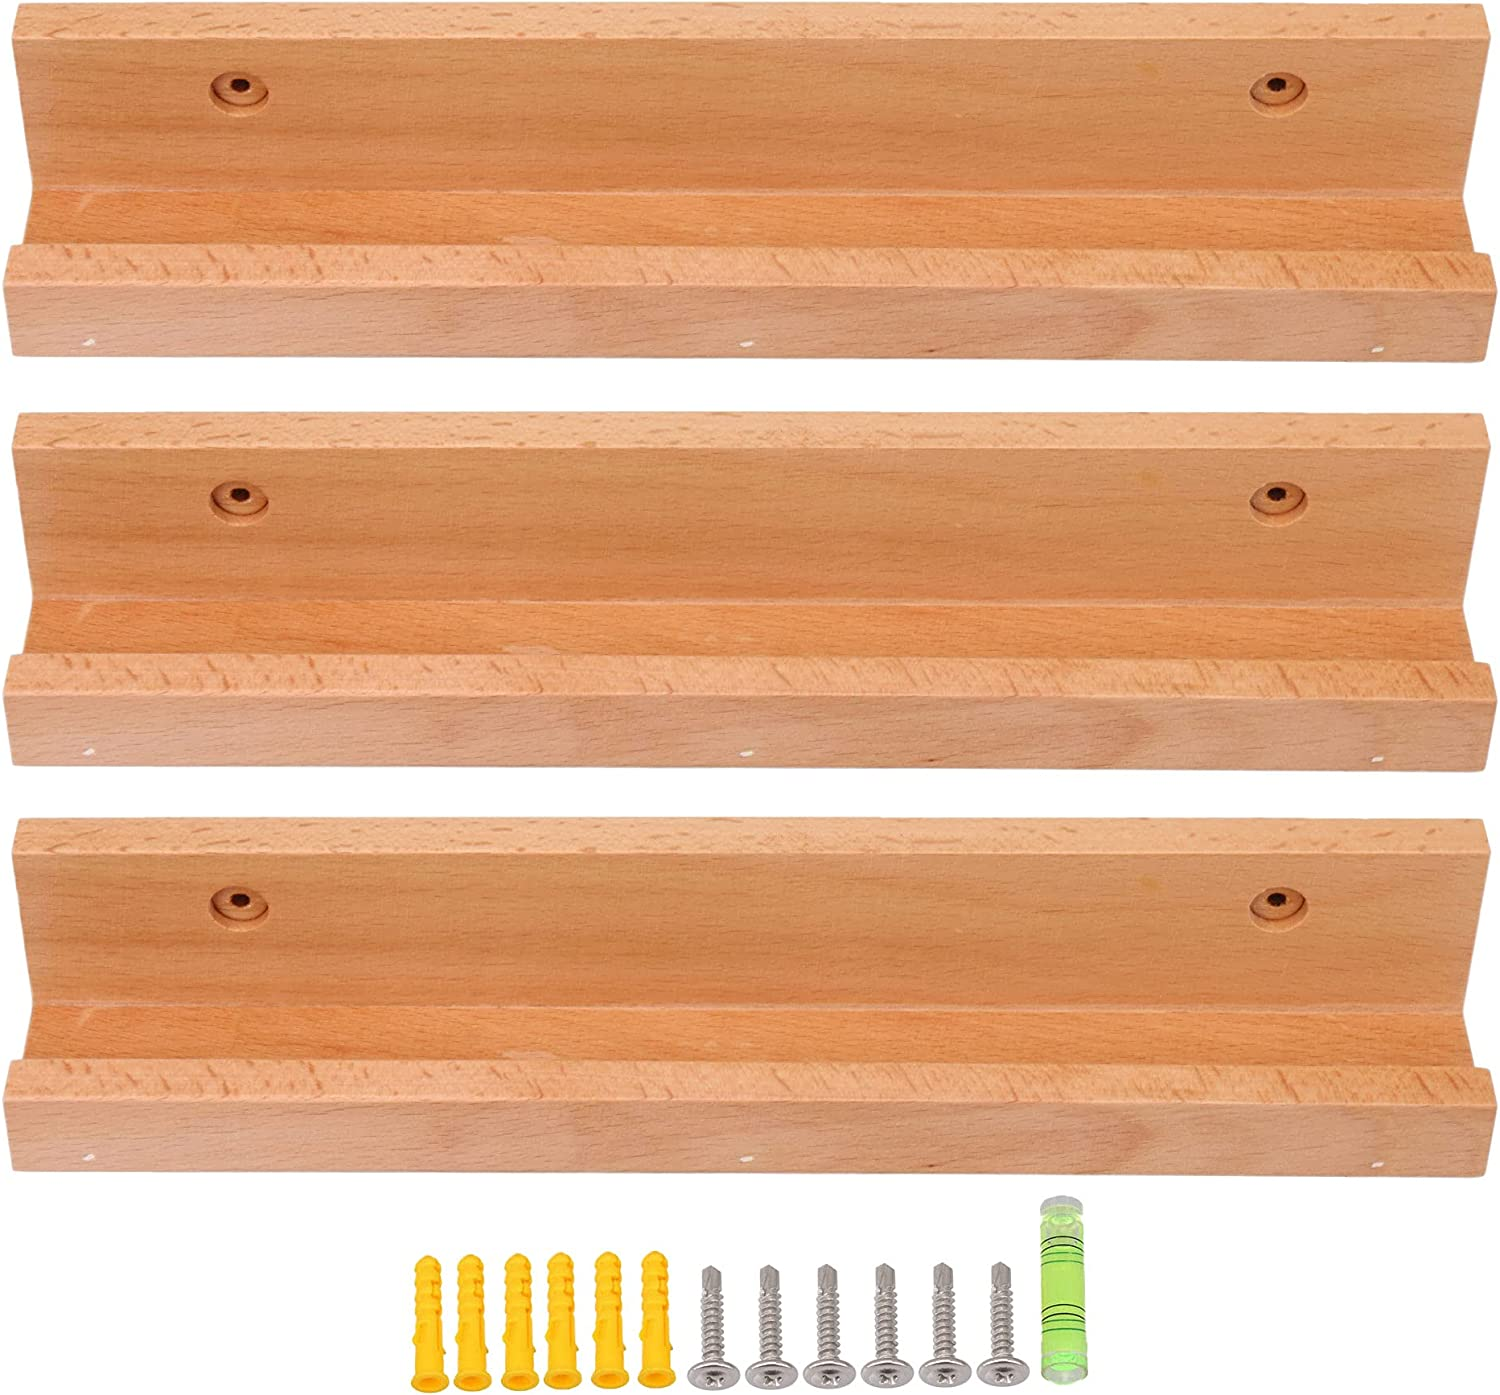 RDEXP 3PCS Beech Year-end gift Wooden Retro Industry No. 1 Record Ledge Holds Artworks Vinyl